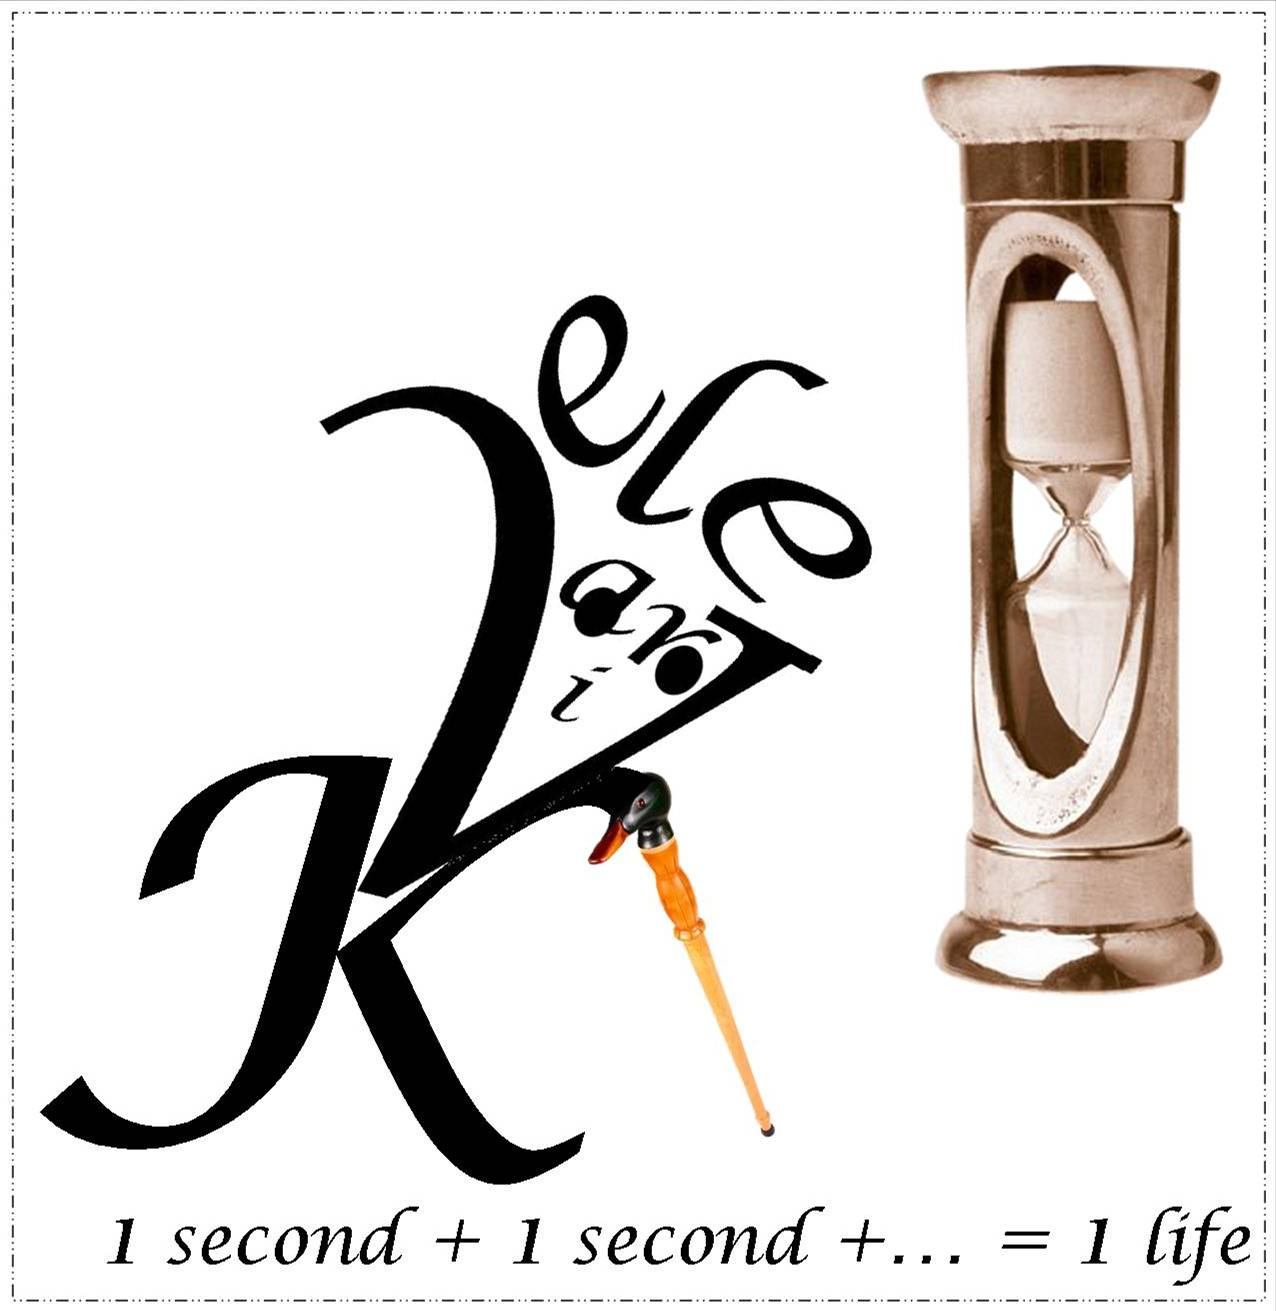 1 second + 1 second +... =1 life